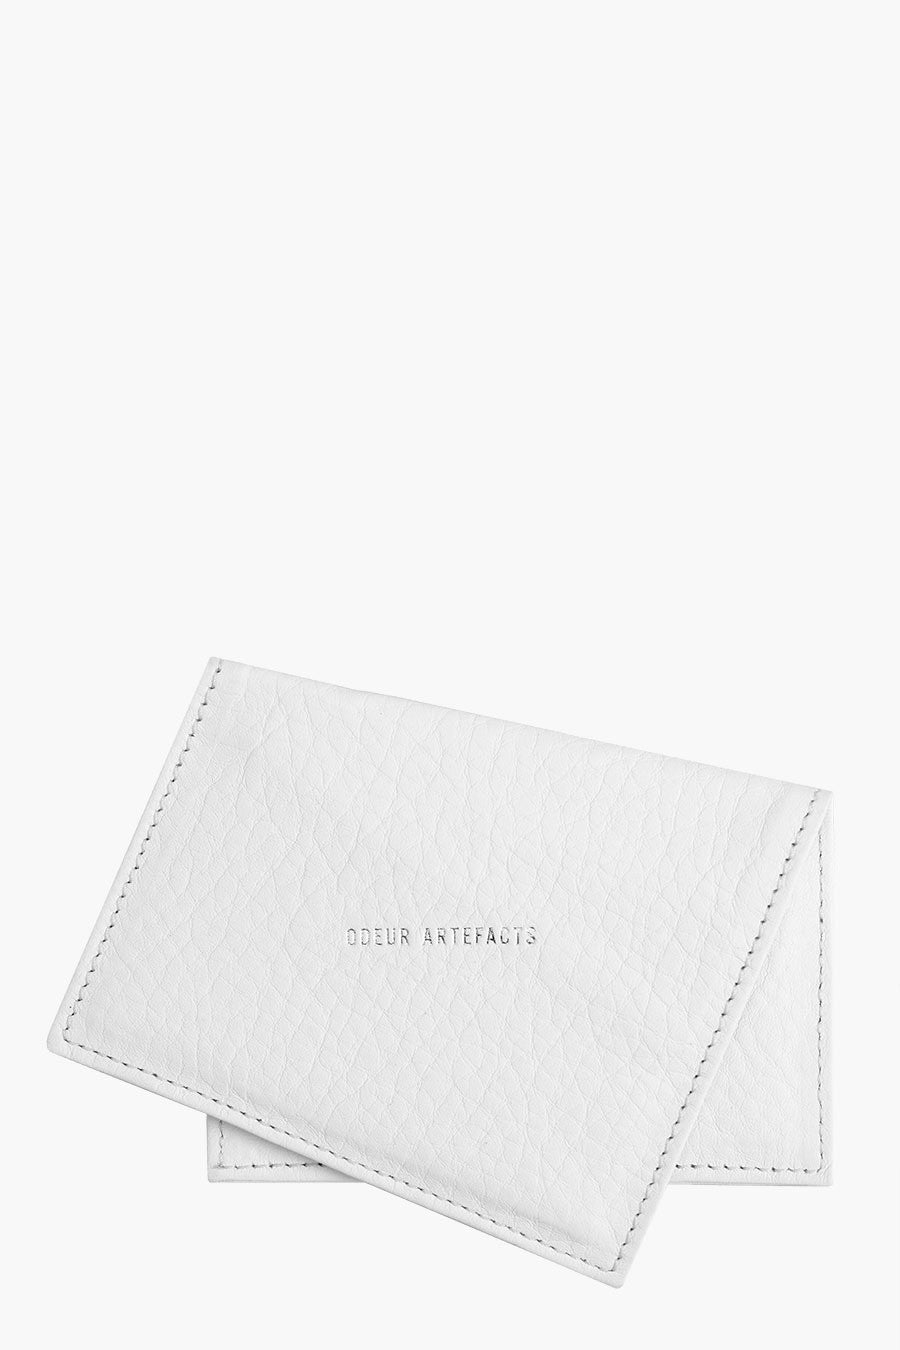 Odeur Artefacts Skew Card Holder: White Leather